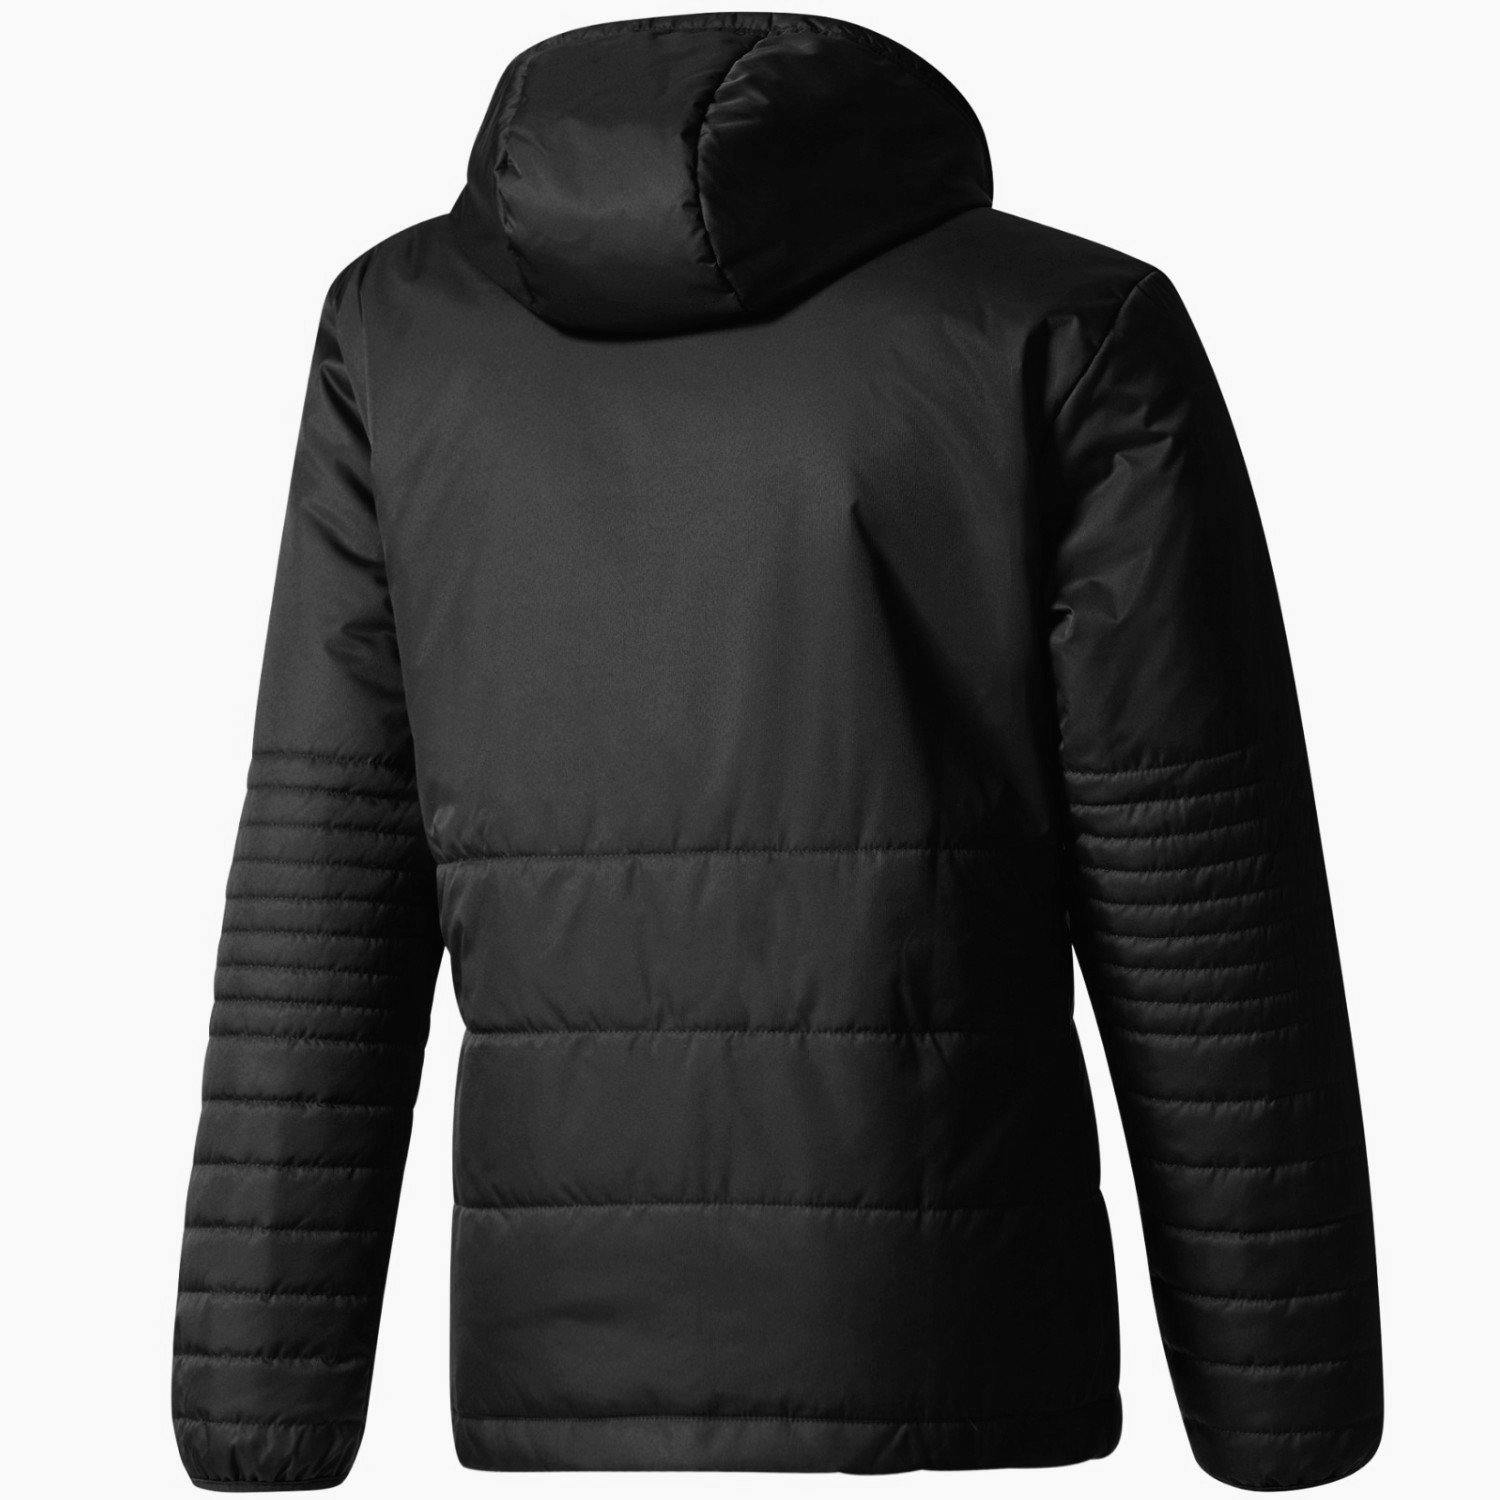 Manchester United Ucl Winter Training Bench Soccer Jacket